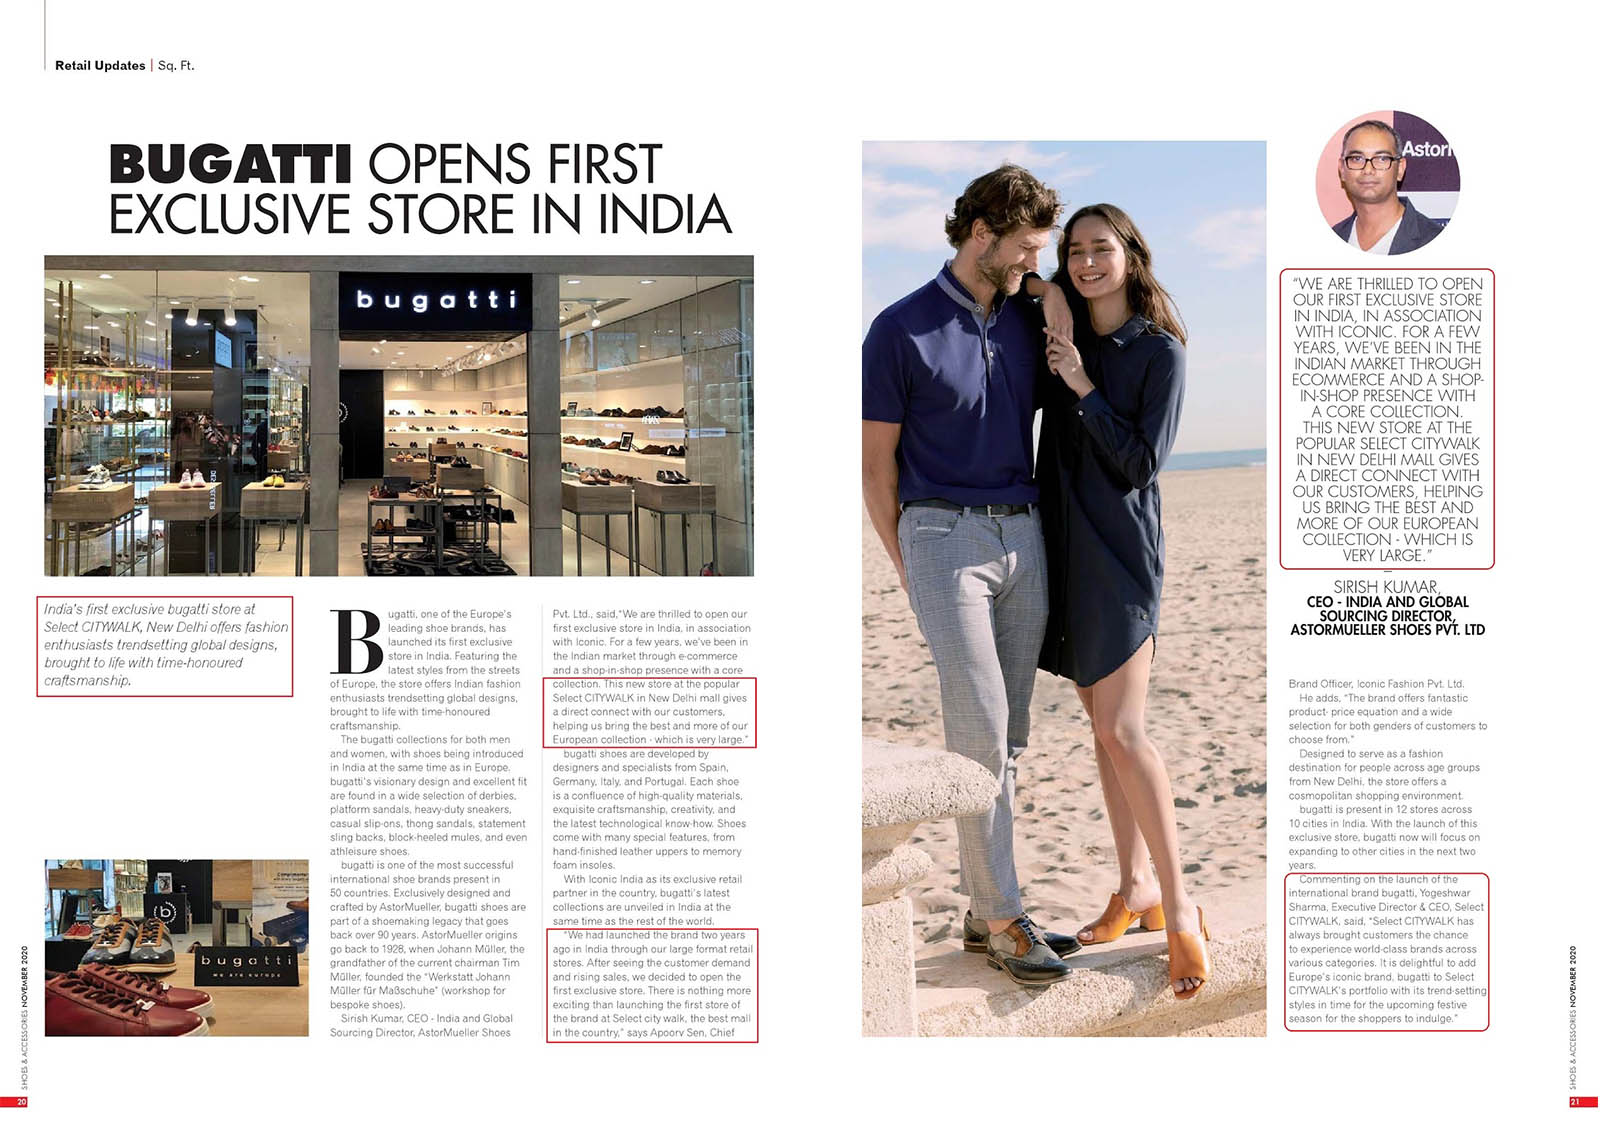 Bugatti Opens First Exclusive Store In India